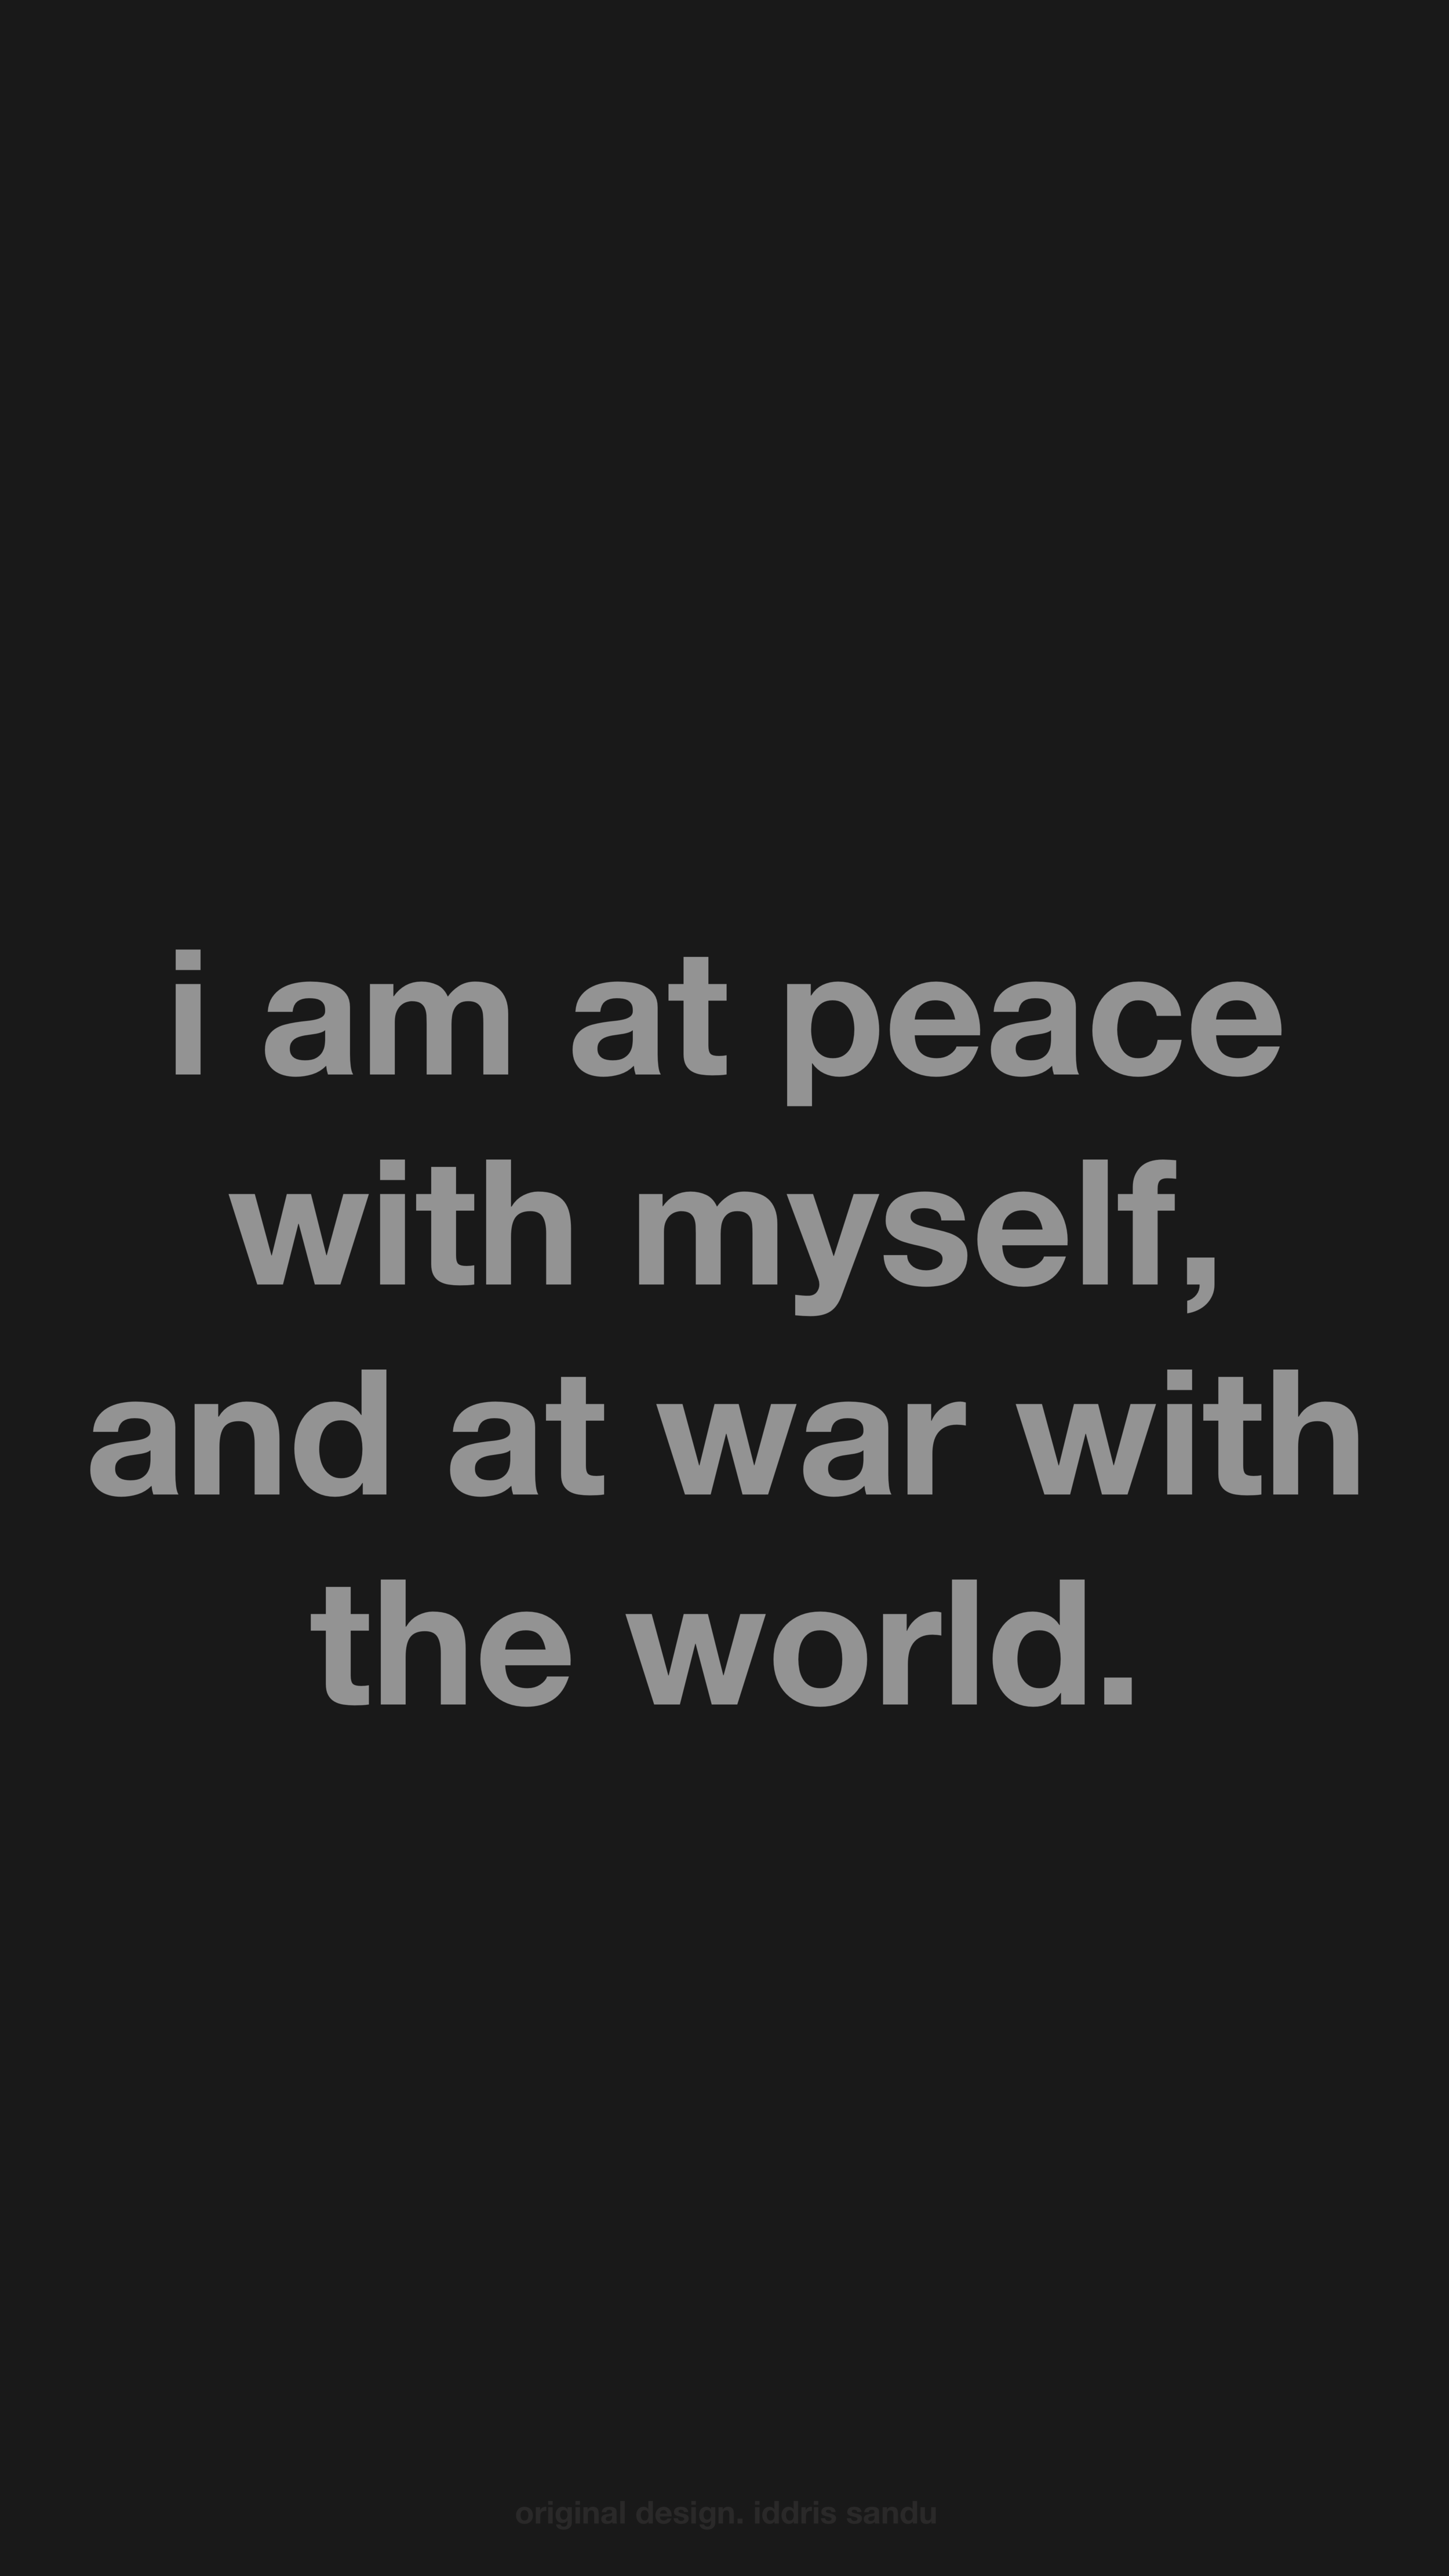 i am at peace with myself, and at war with the world(mobile).png